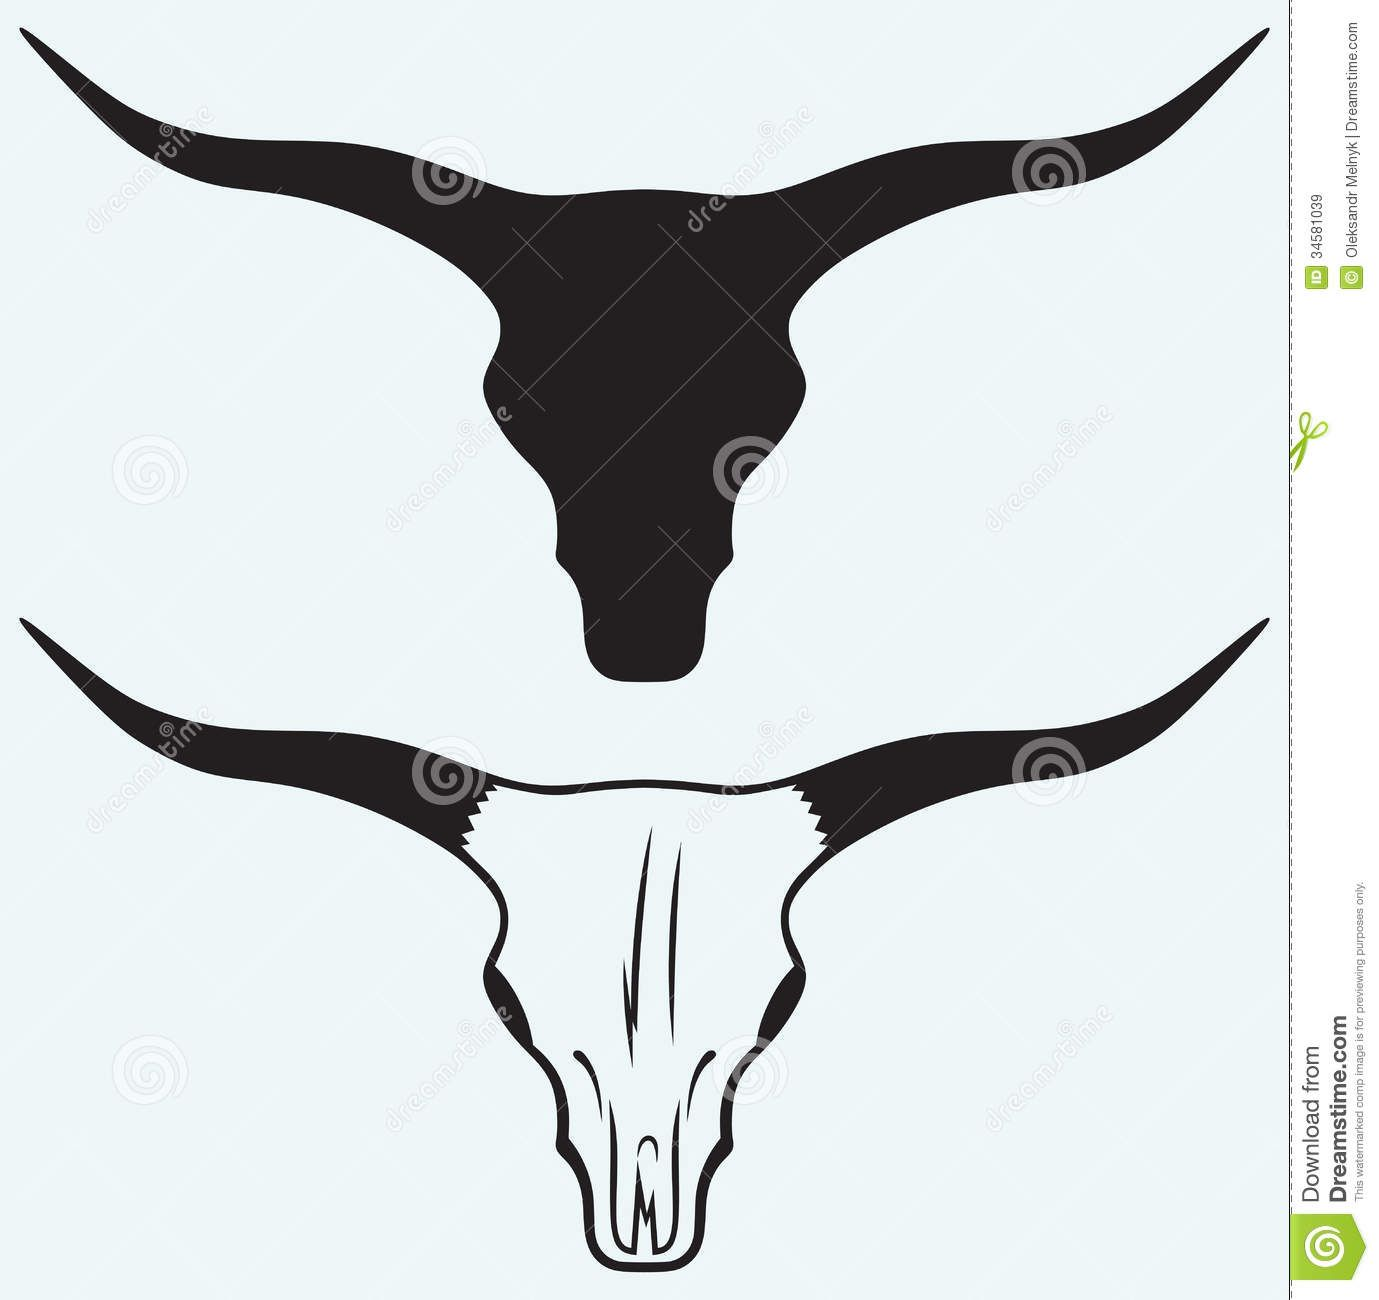 Skull Of A Bull - Download From Over 46 Million High Quality Stock ...